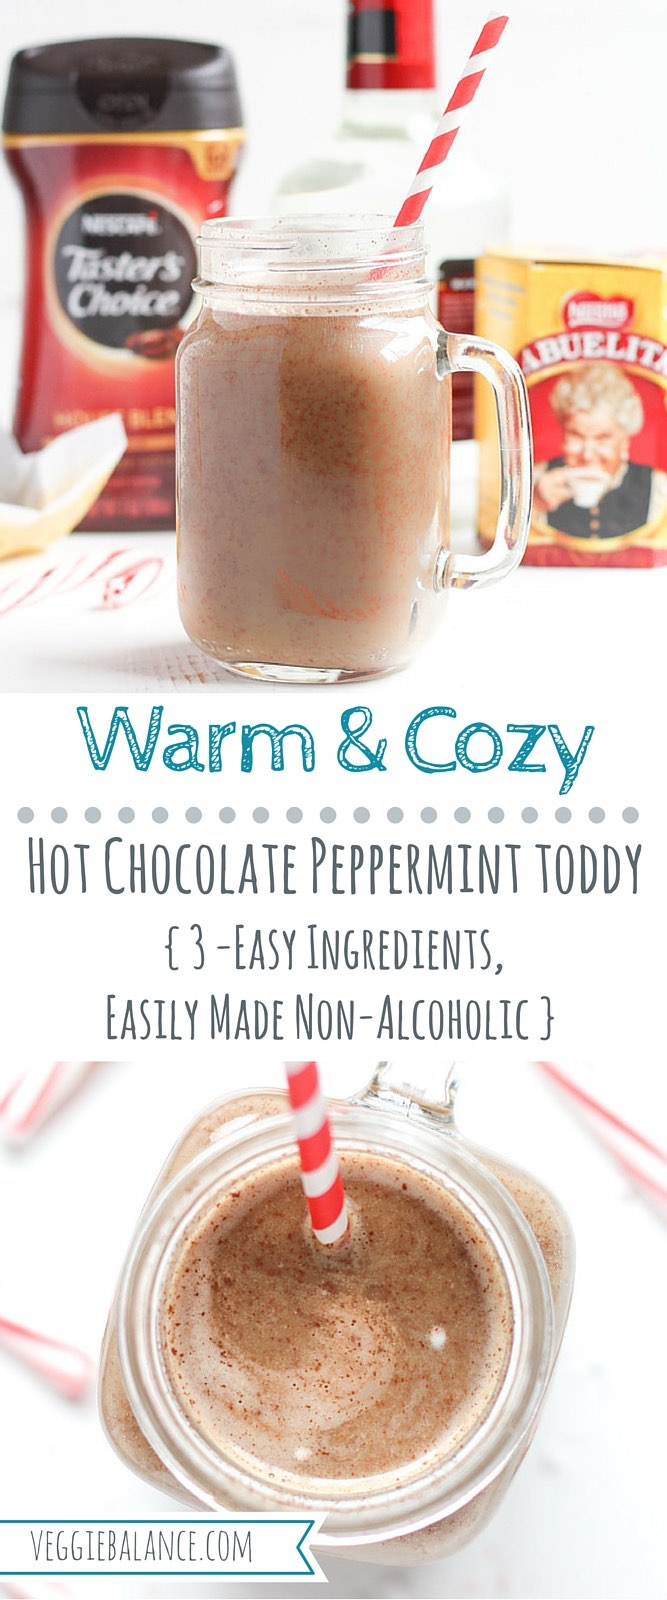 Hot Chocolate Toddy with Peppermint - Veggie Balance